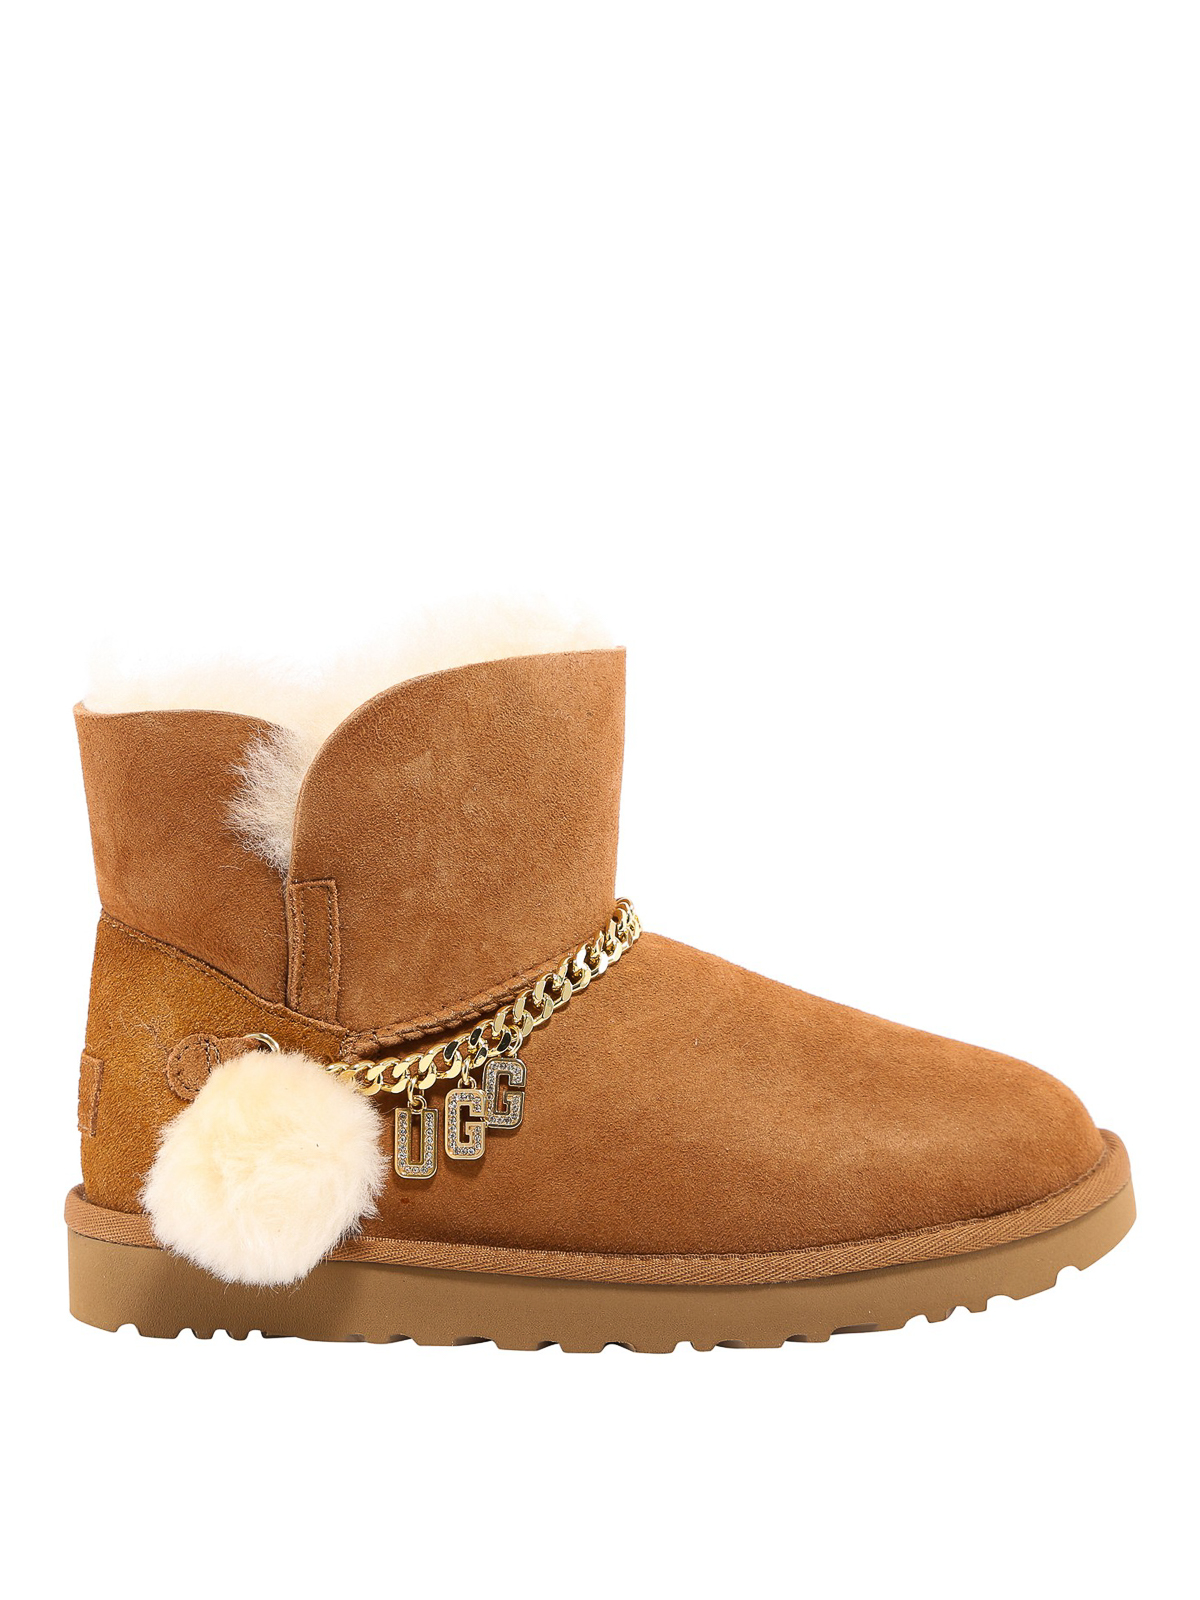 Ugg CLASSIC CHARM MINI BOOTIES